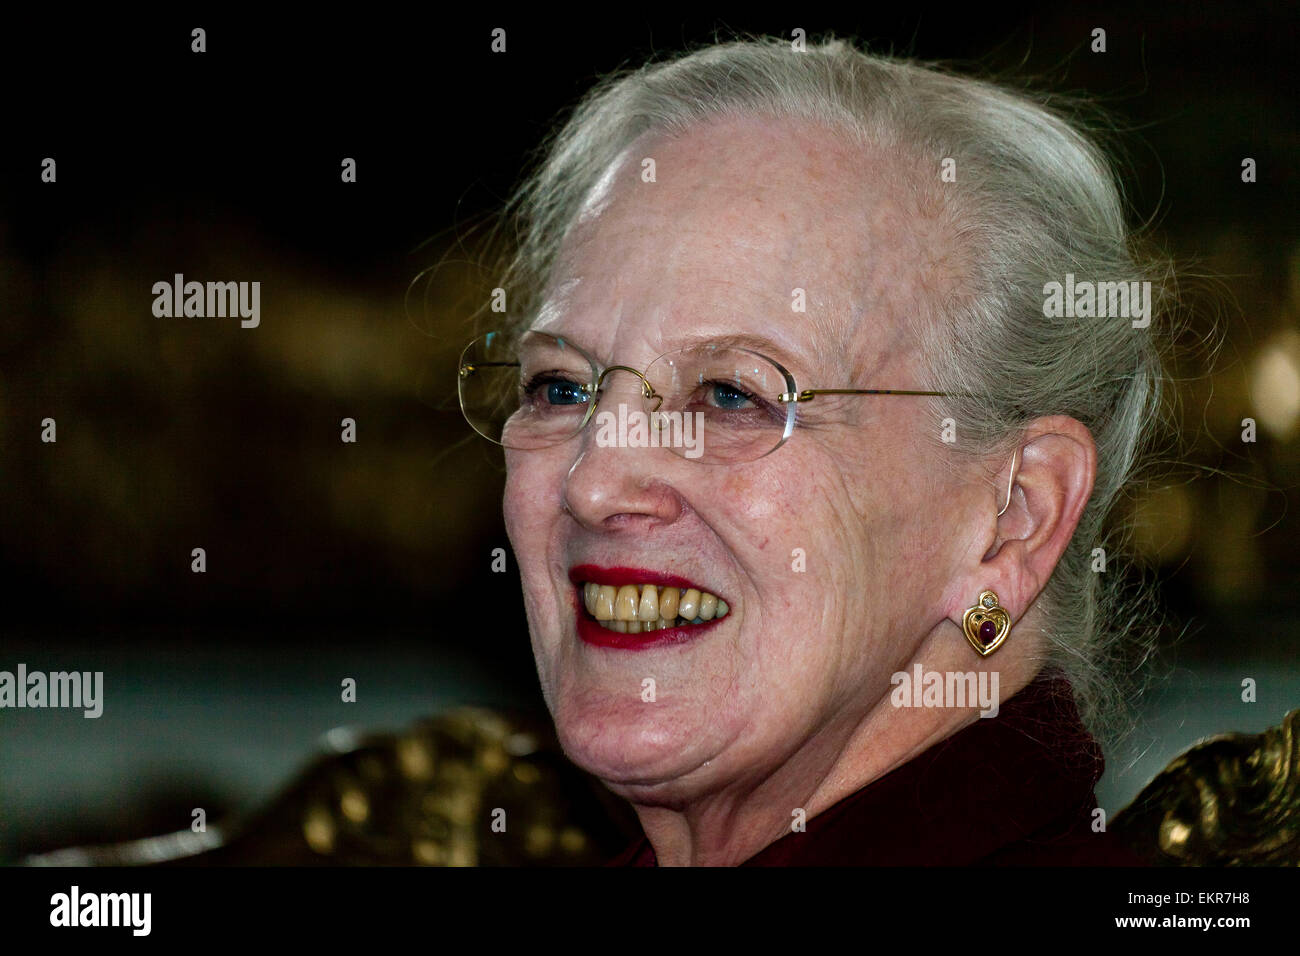 Fredensborg, Denmark. 13th April, 2015. Queen of Denmark,  Margrethe the 2nd, holds a press conference prior to - Stock Image